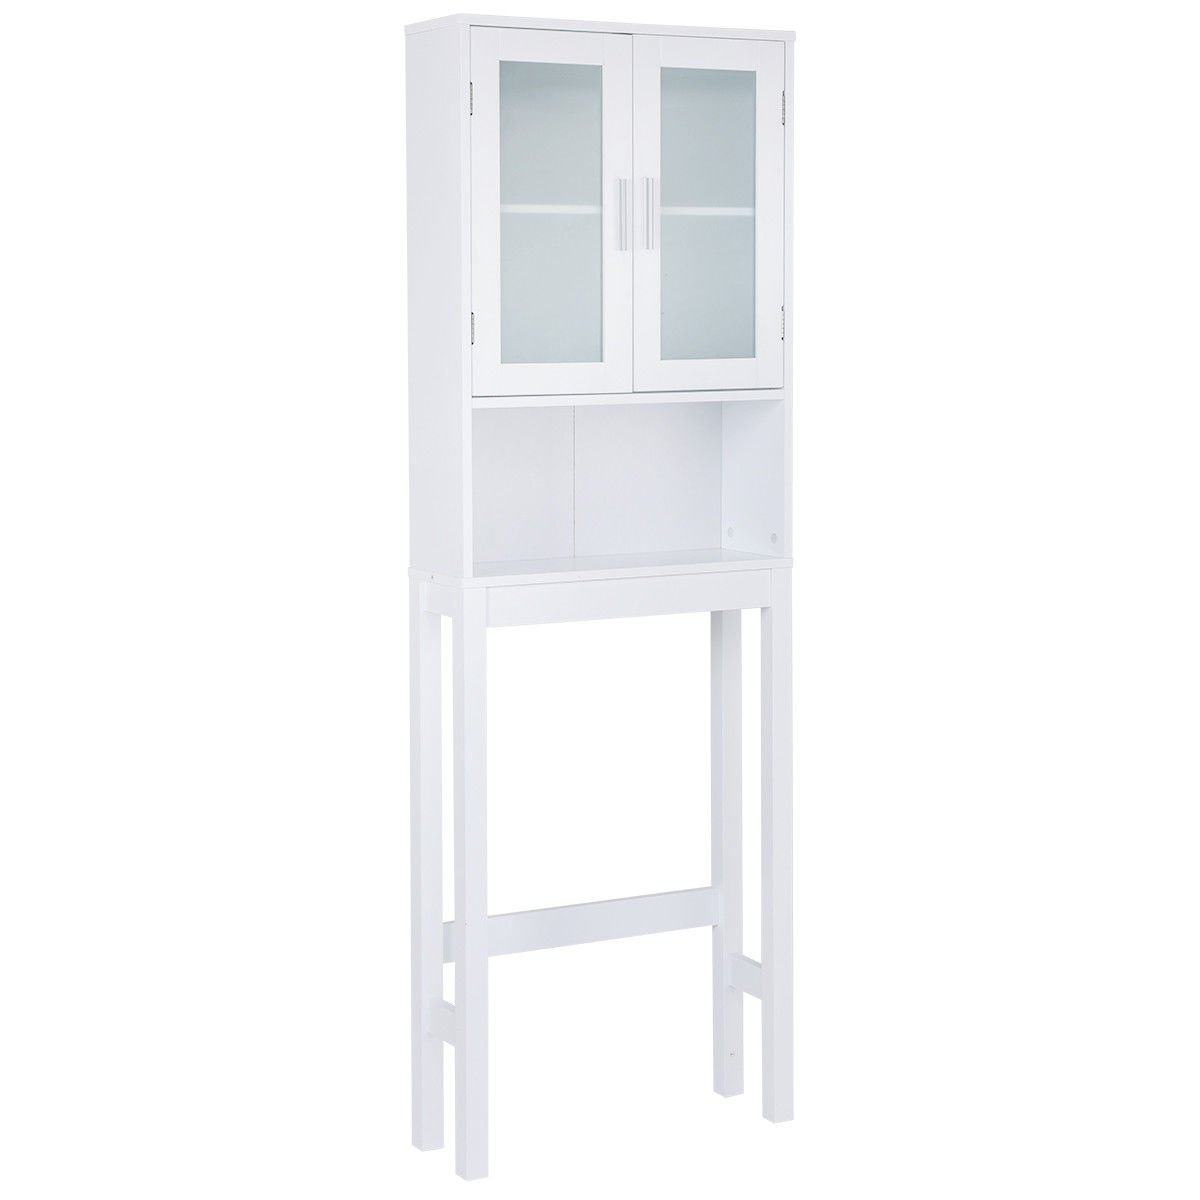 Over The Toilet Storage Cabinet Space Saver Organizer Bathroom Tower Rack Wooden White